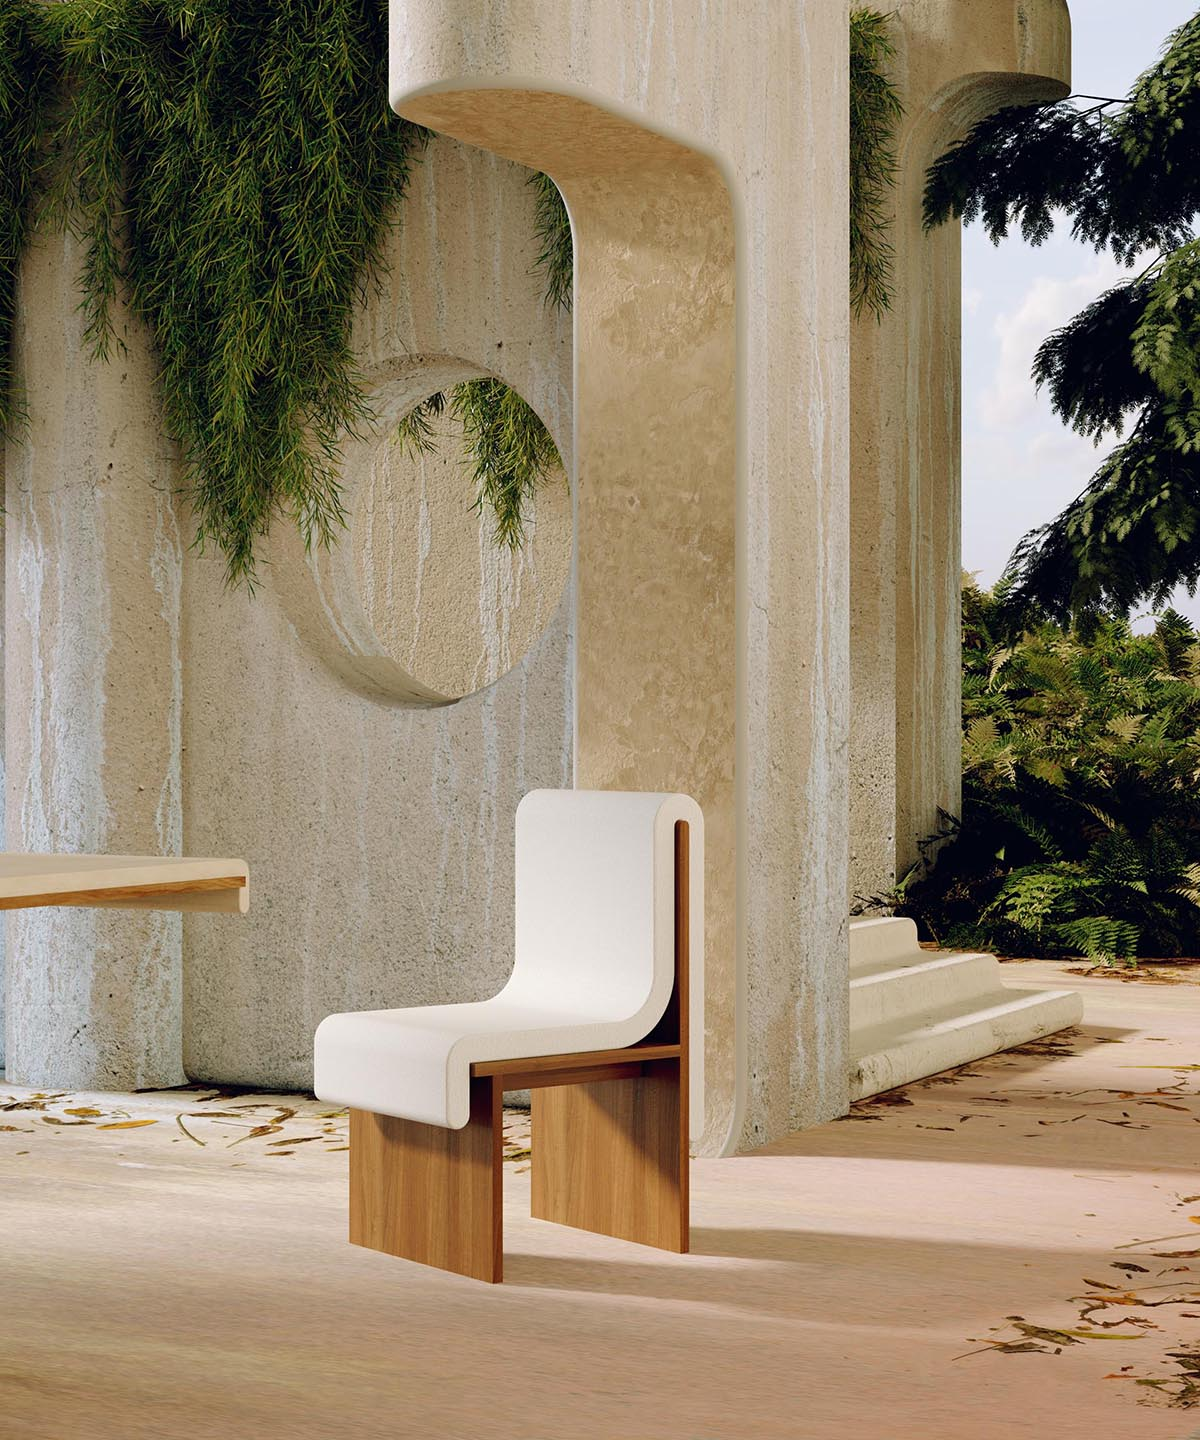 A modern wood chair with white seat.